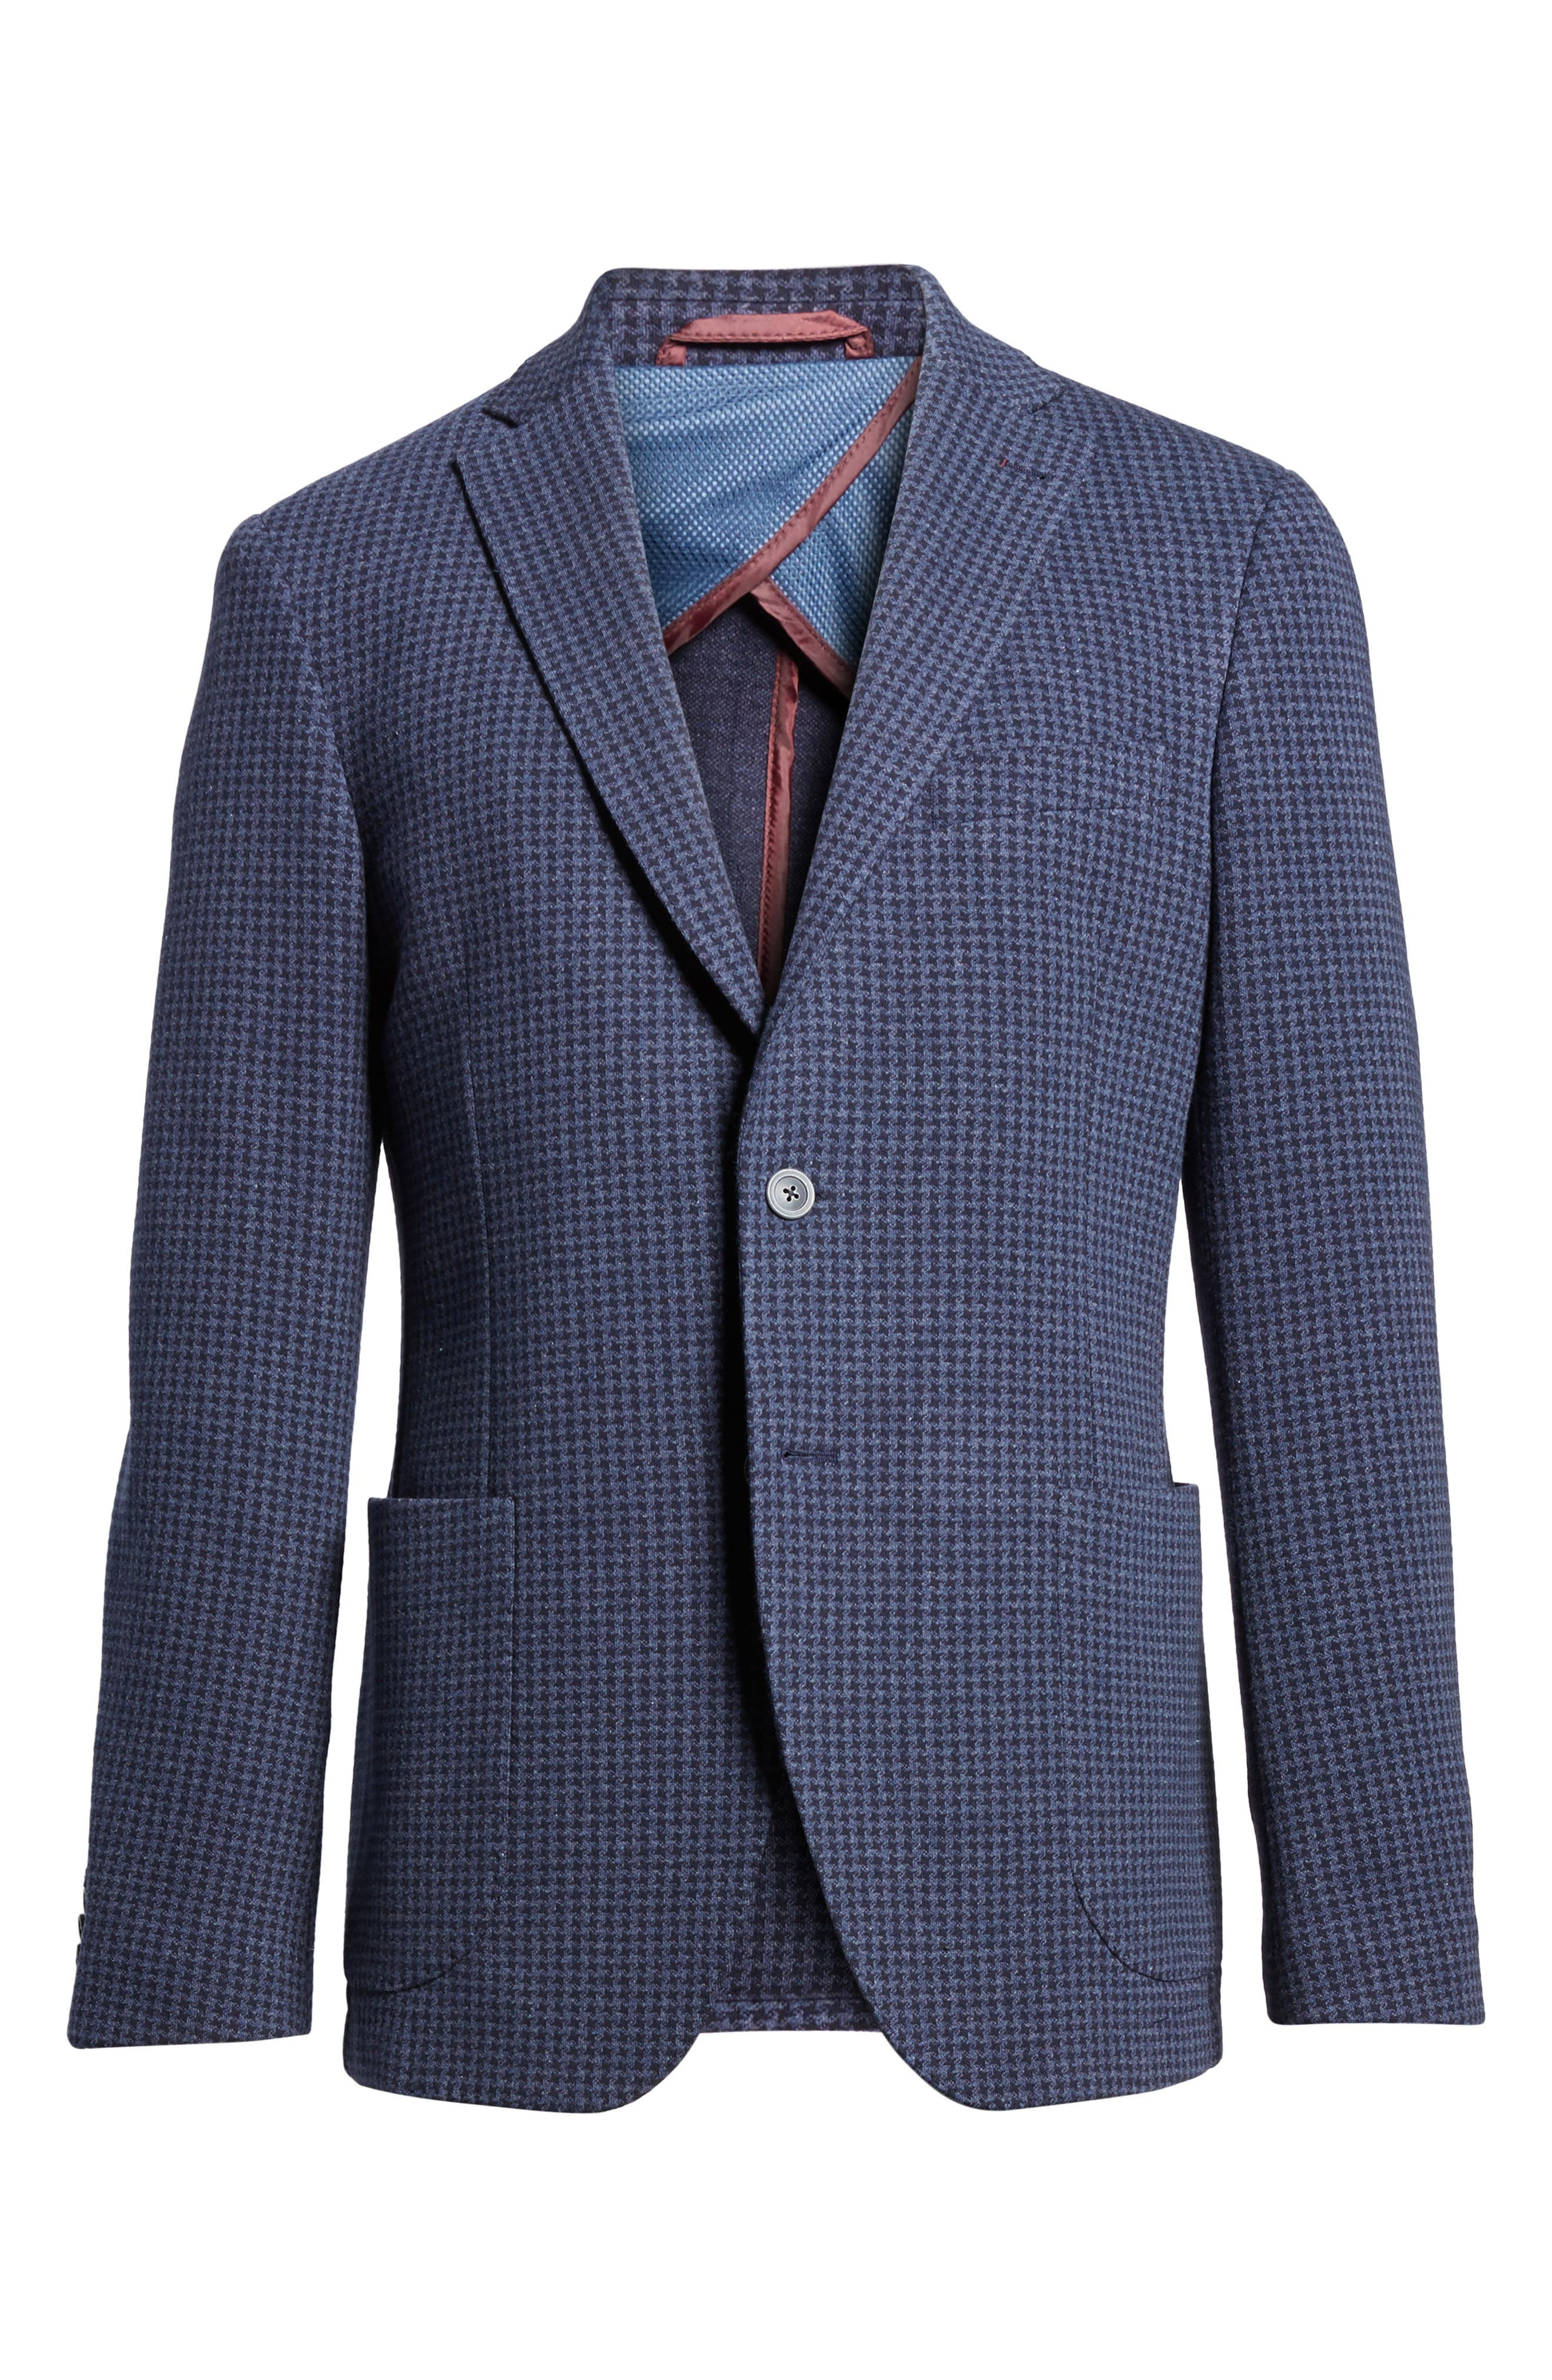 Houndstooth Cotton Knit Blazer,                             Alternate thumbnail 6, color,                             Navy